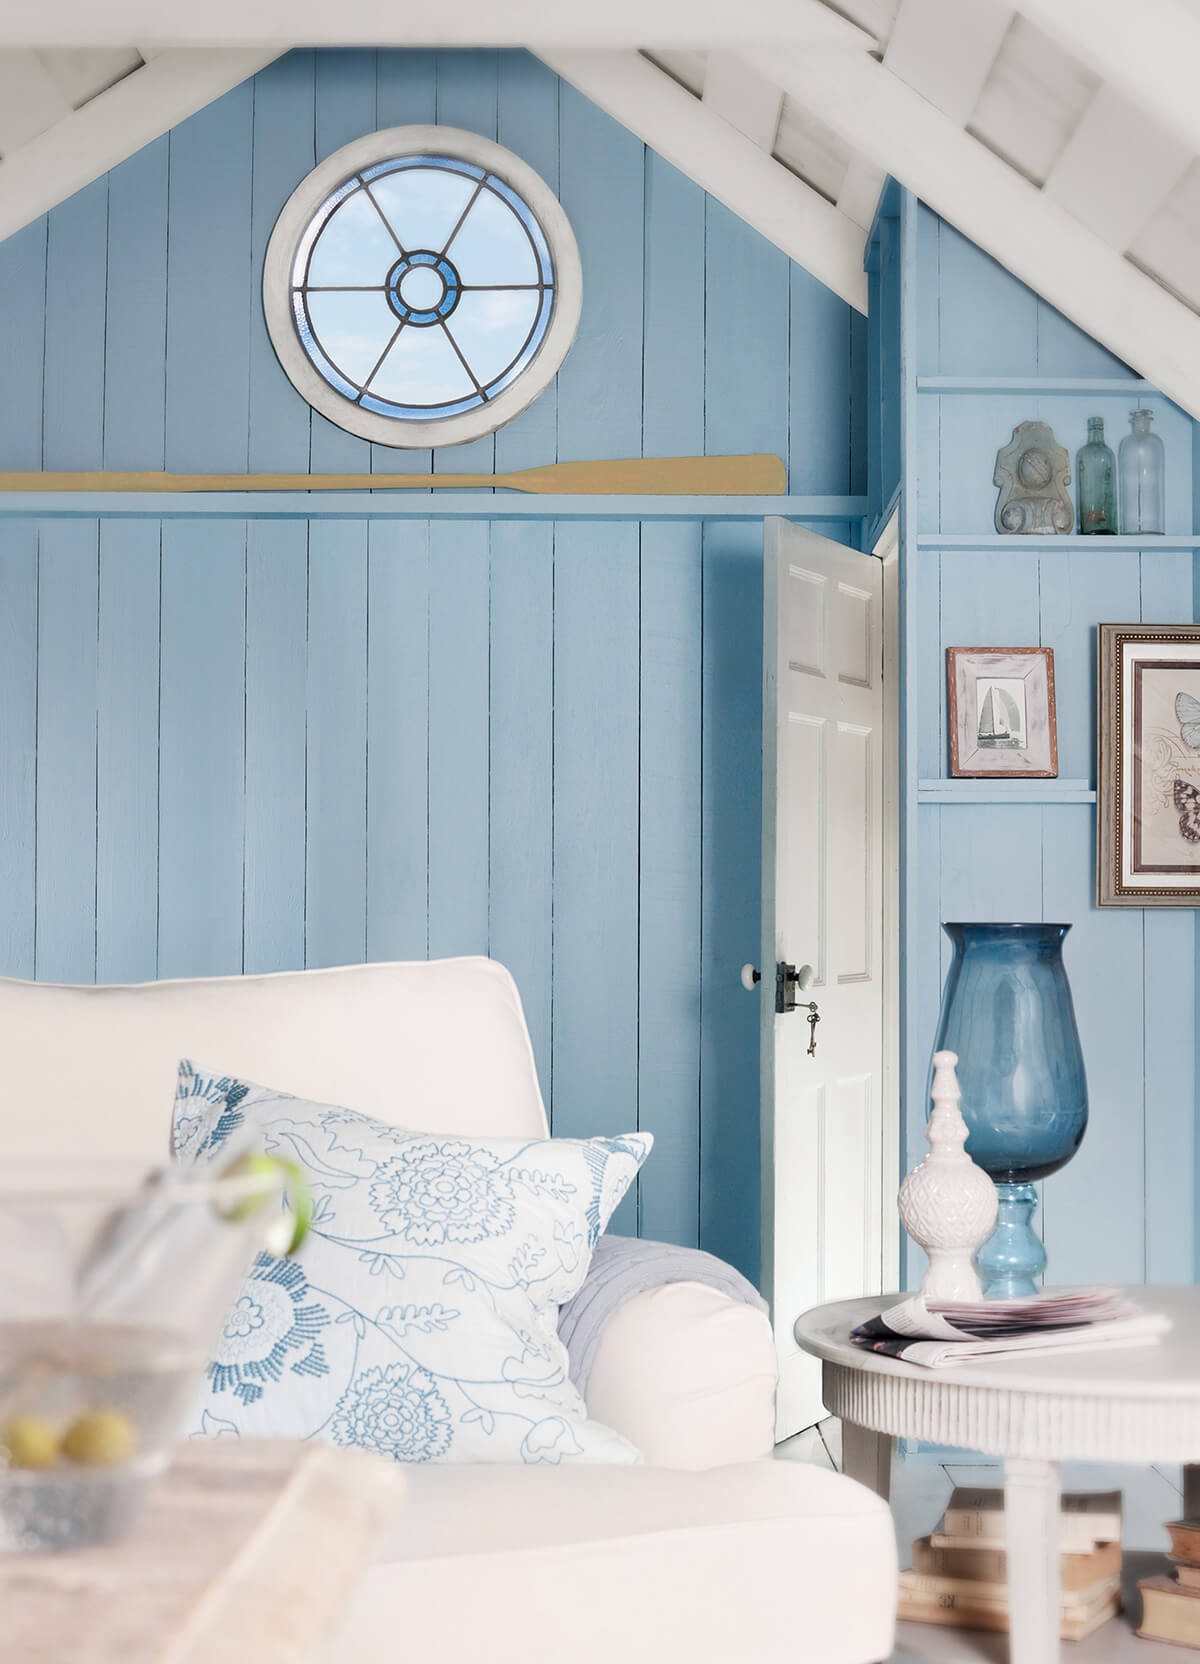 Ocean Blues Home Decor Inspiration for the Bathroom